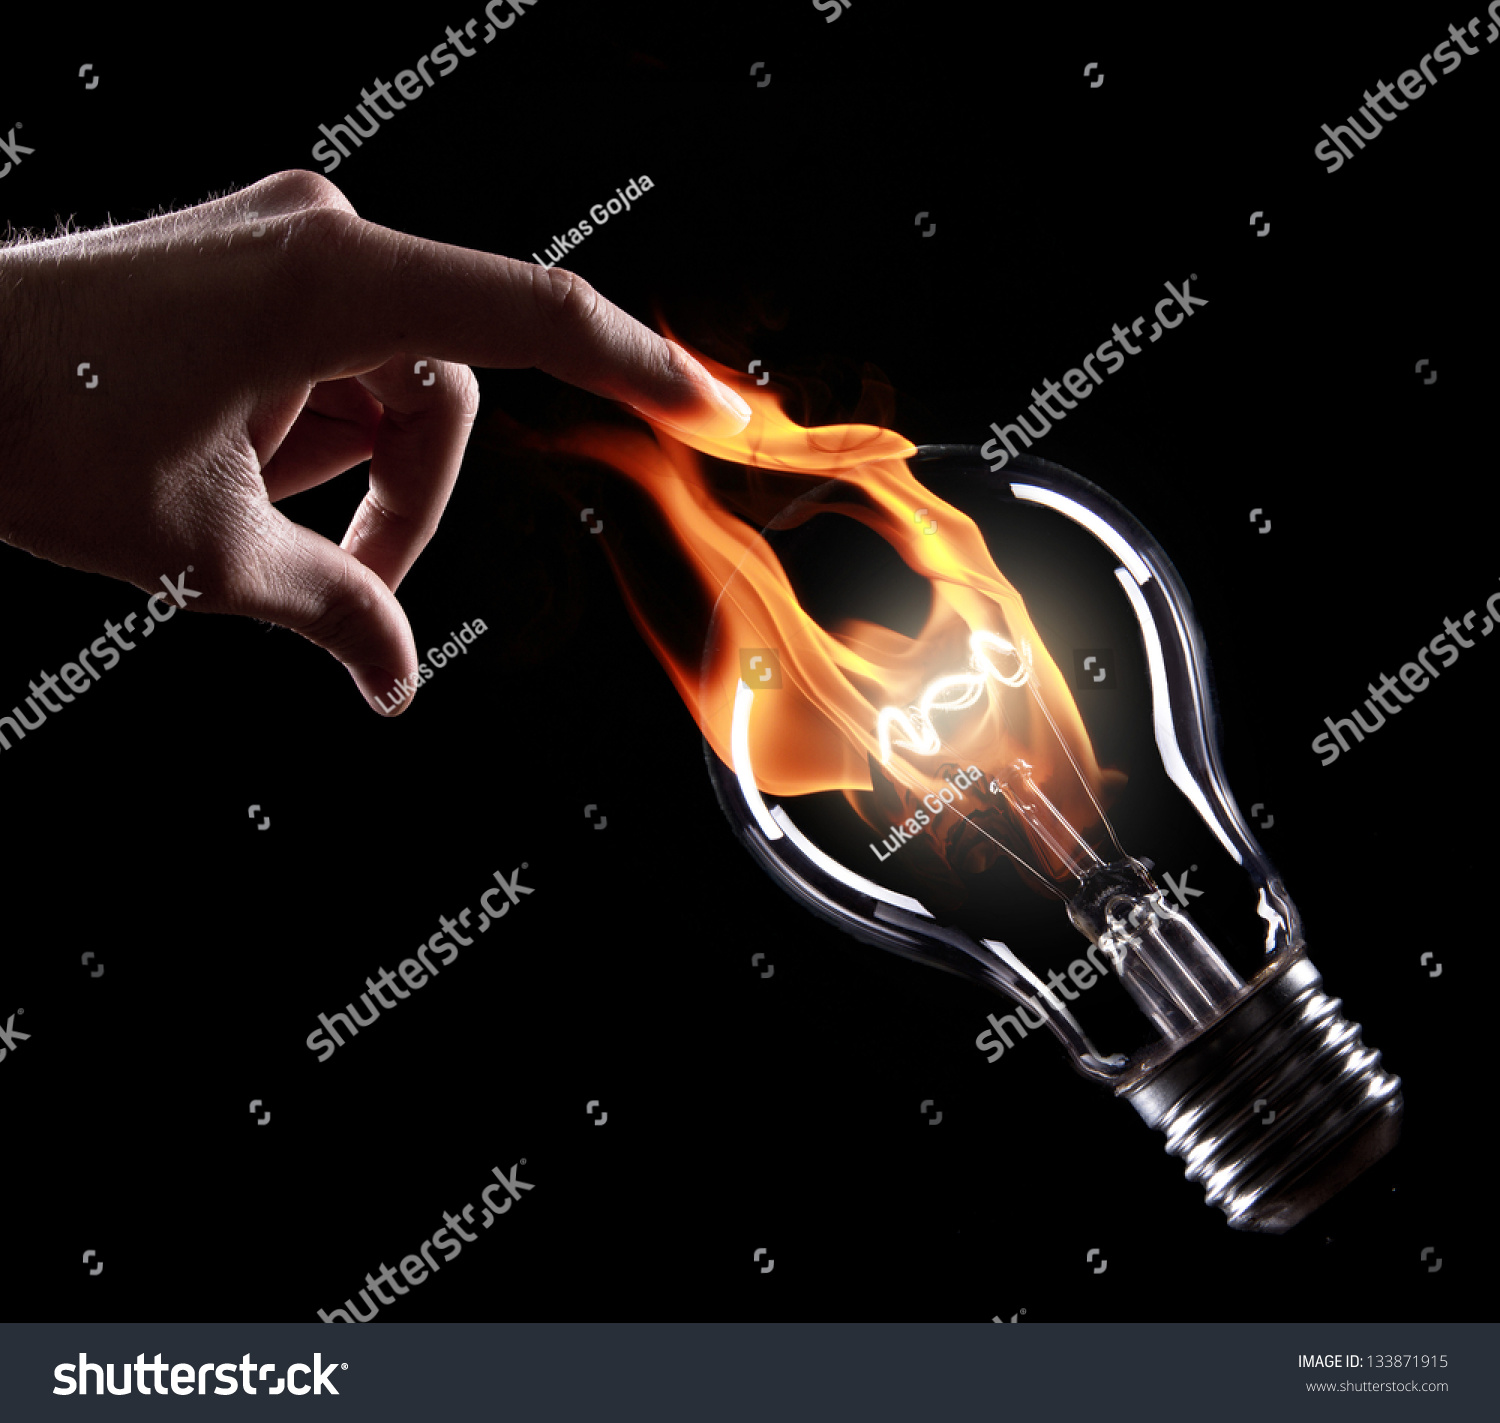 Fire Light Bulb: light bulb with fire on black background Preview. Save to a lightbox,Lighting